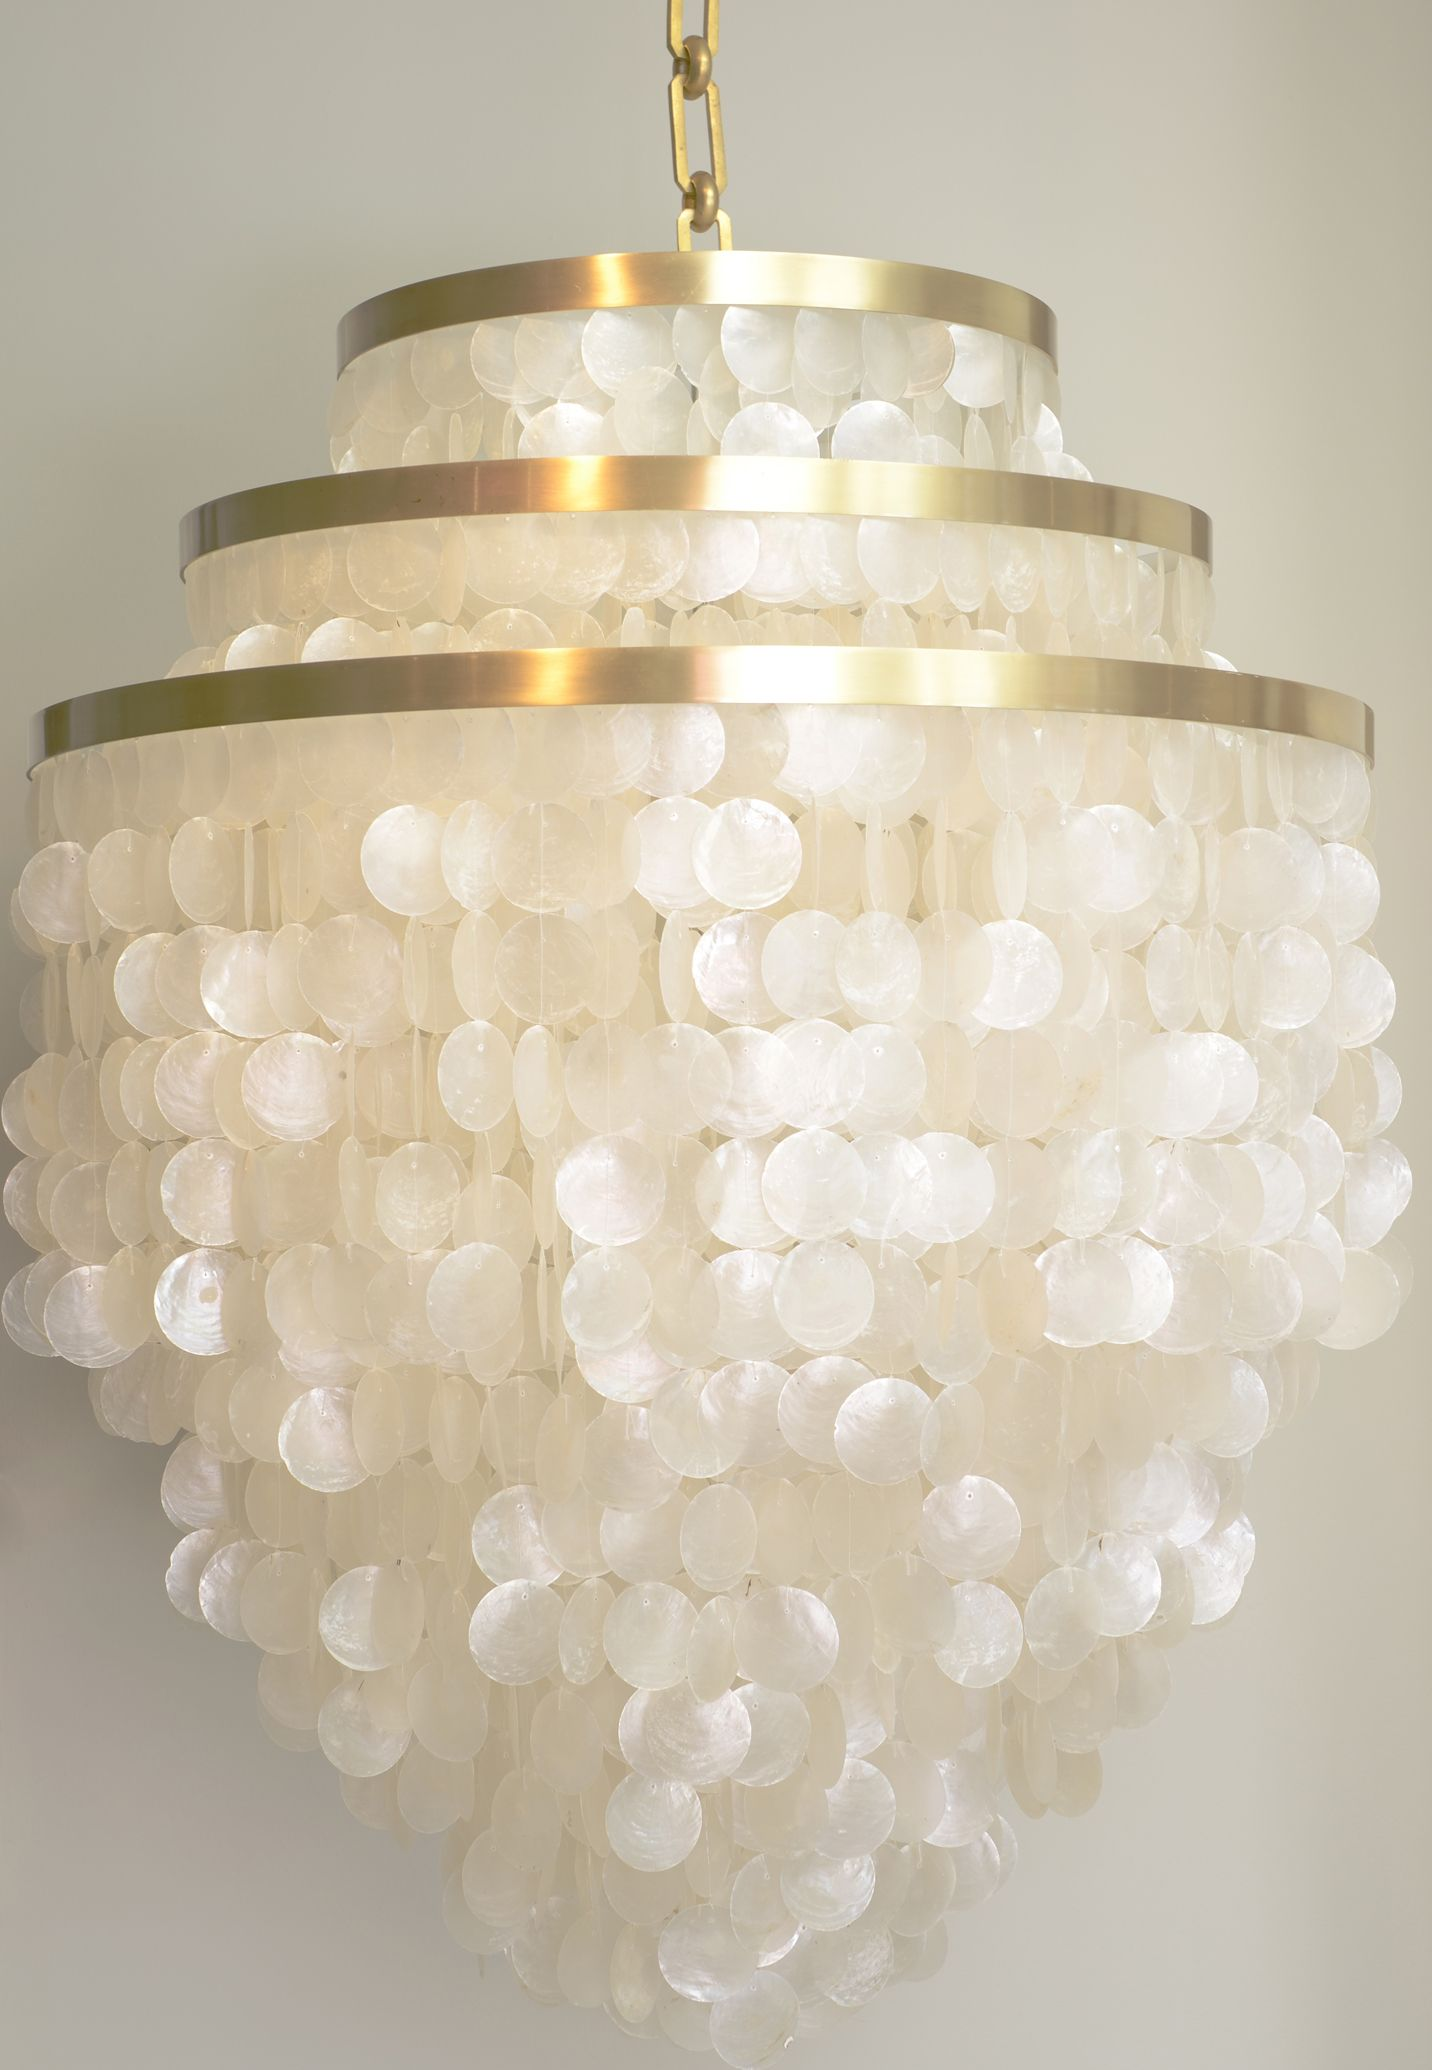 Quite simply the most luxe lush and versatile capiz chandeliers quite simply the most luxe lush and versatile capiz chandeliers available this classic design aloadofball Choice Image